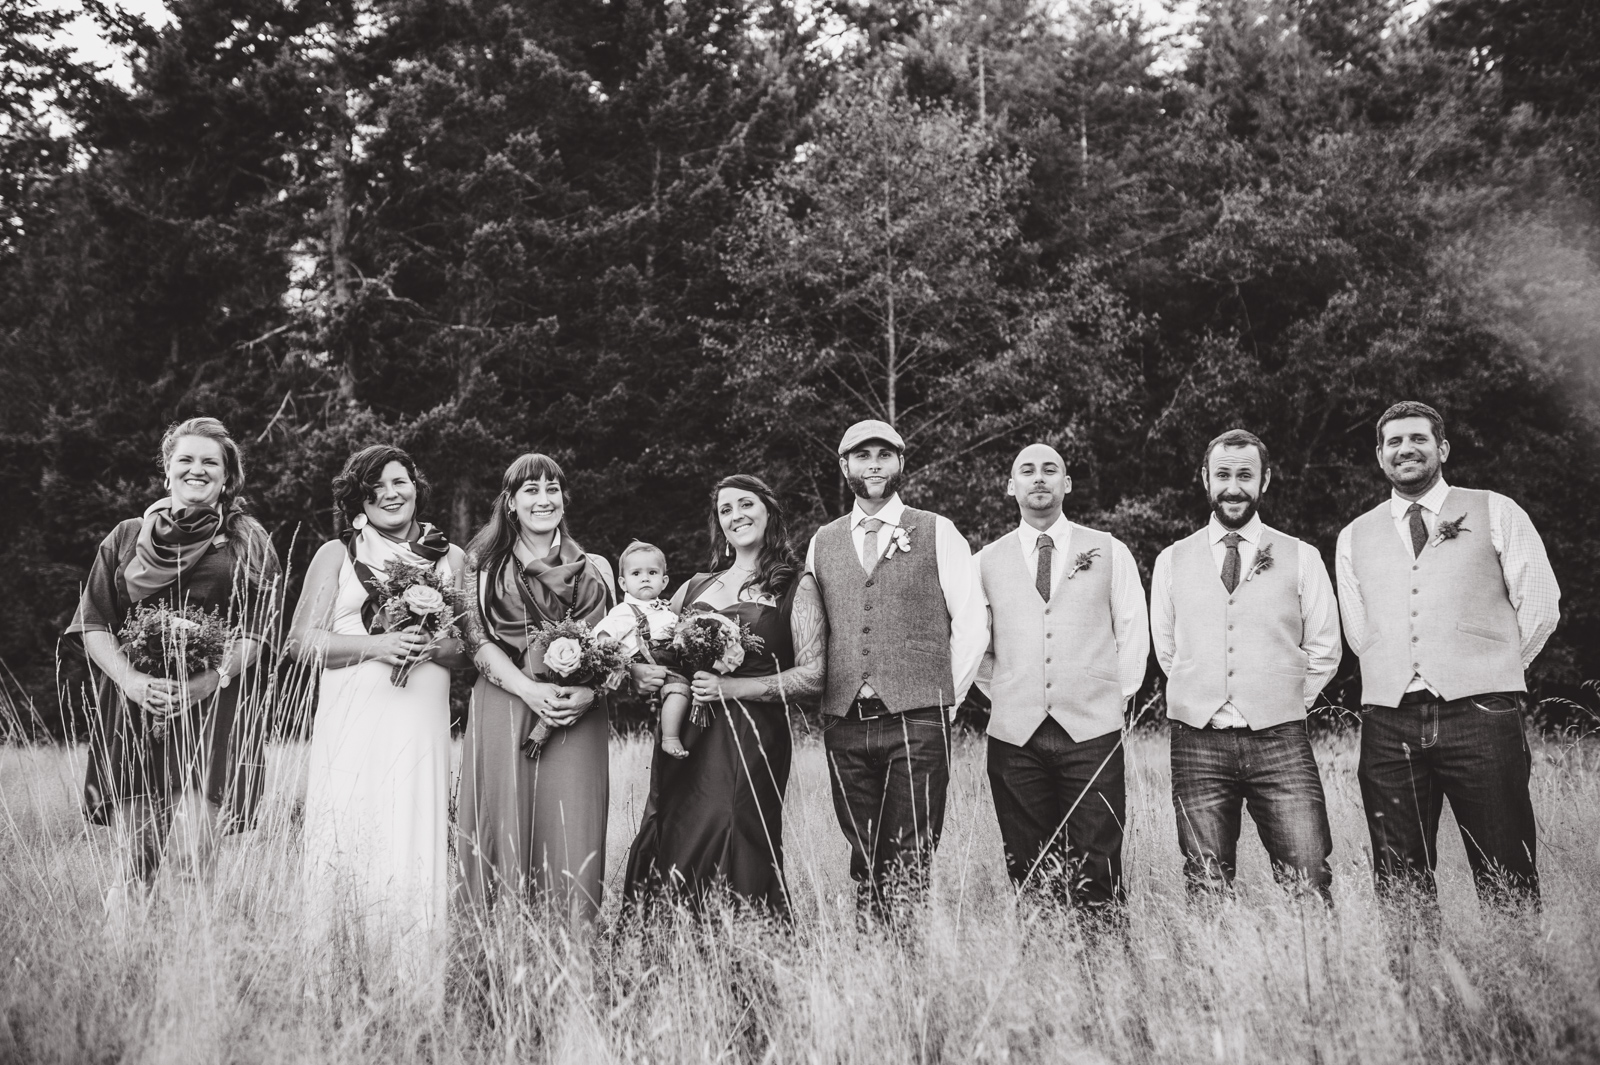 sooke-wedding-photographers-diy-wedding-in-east-sooke-45.jpg